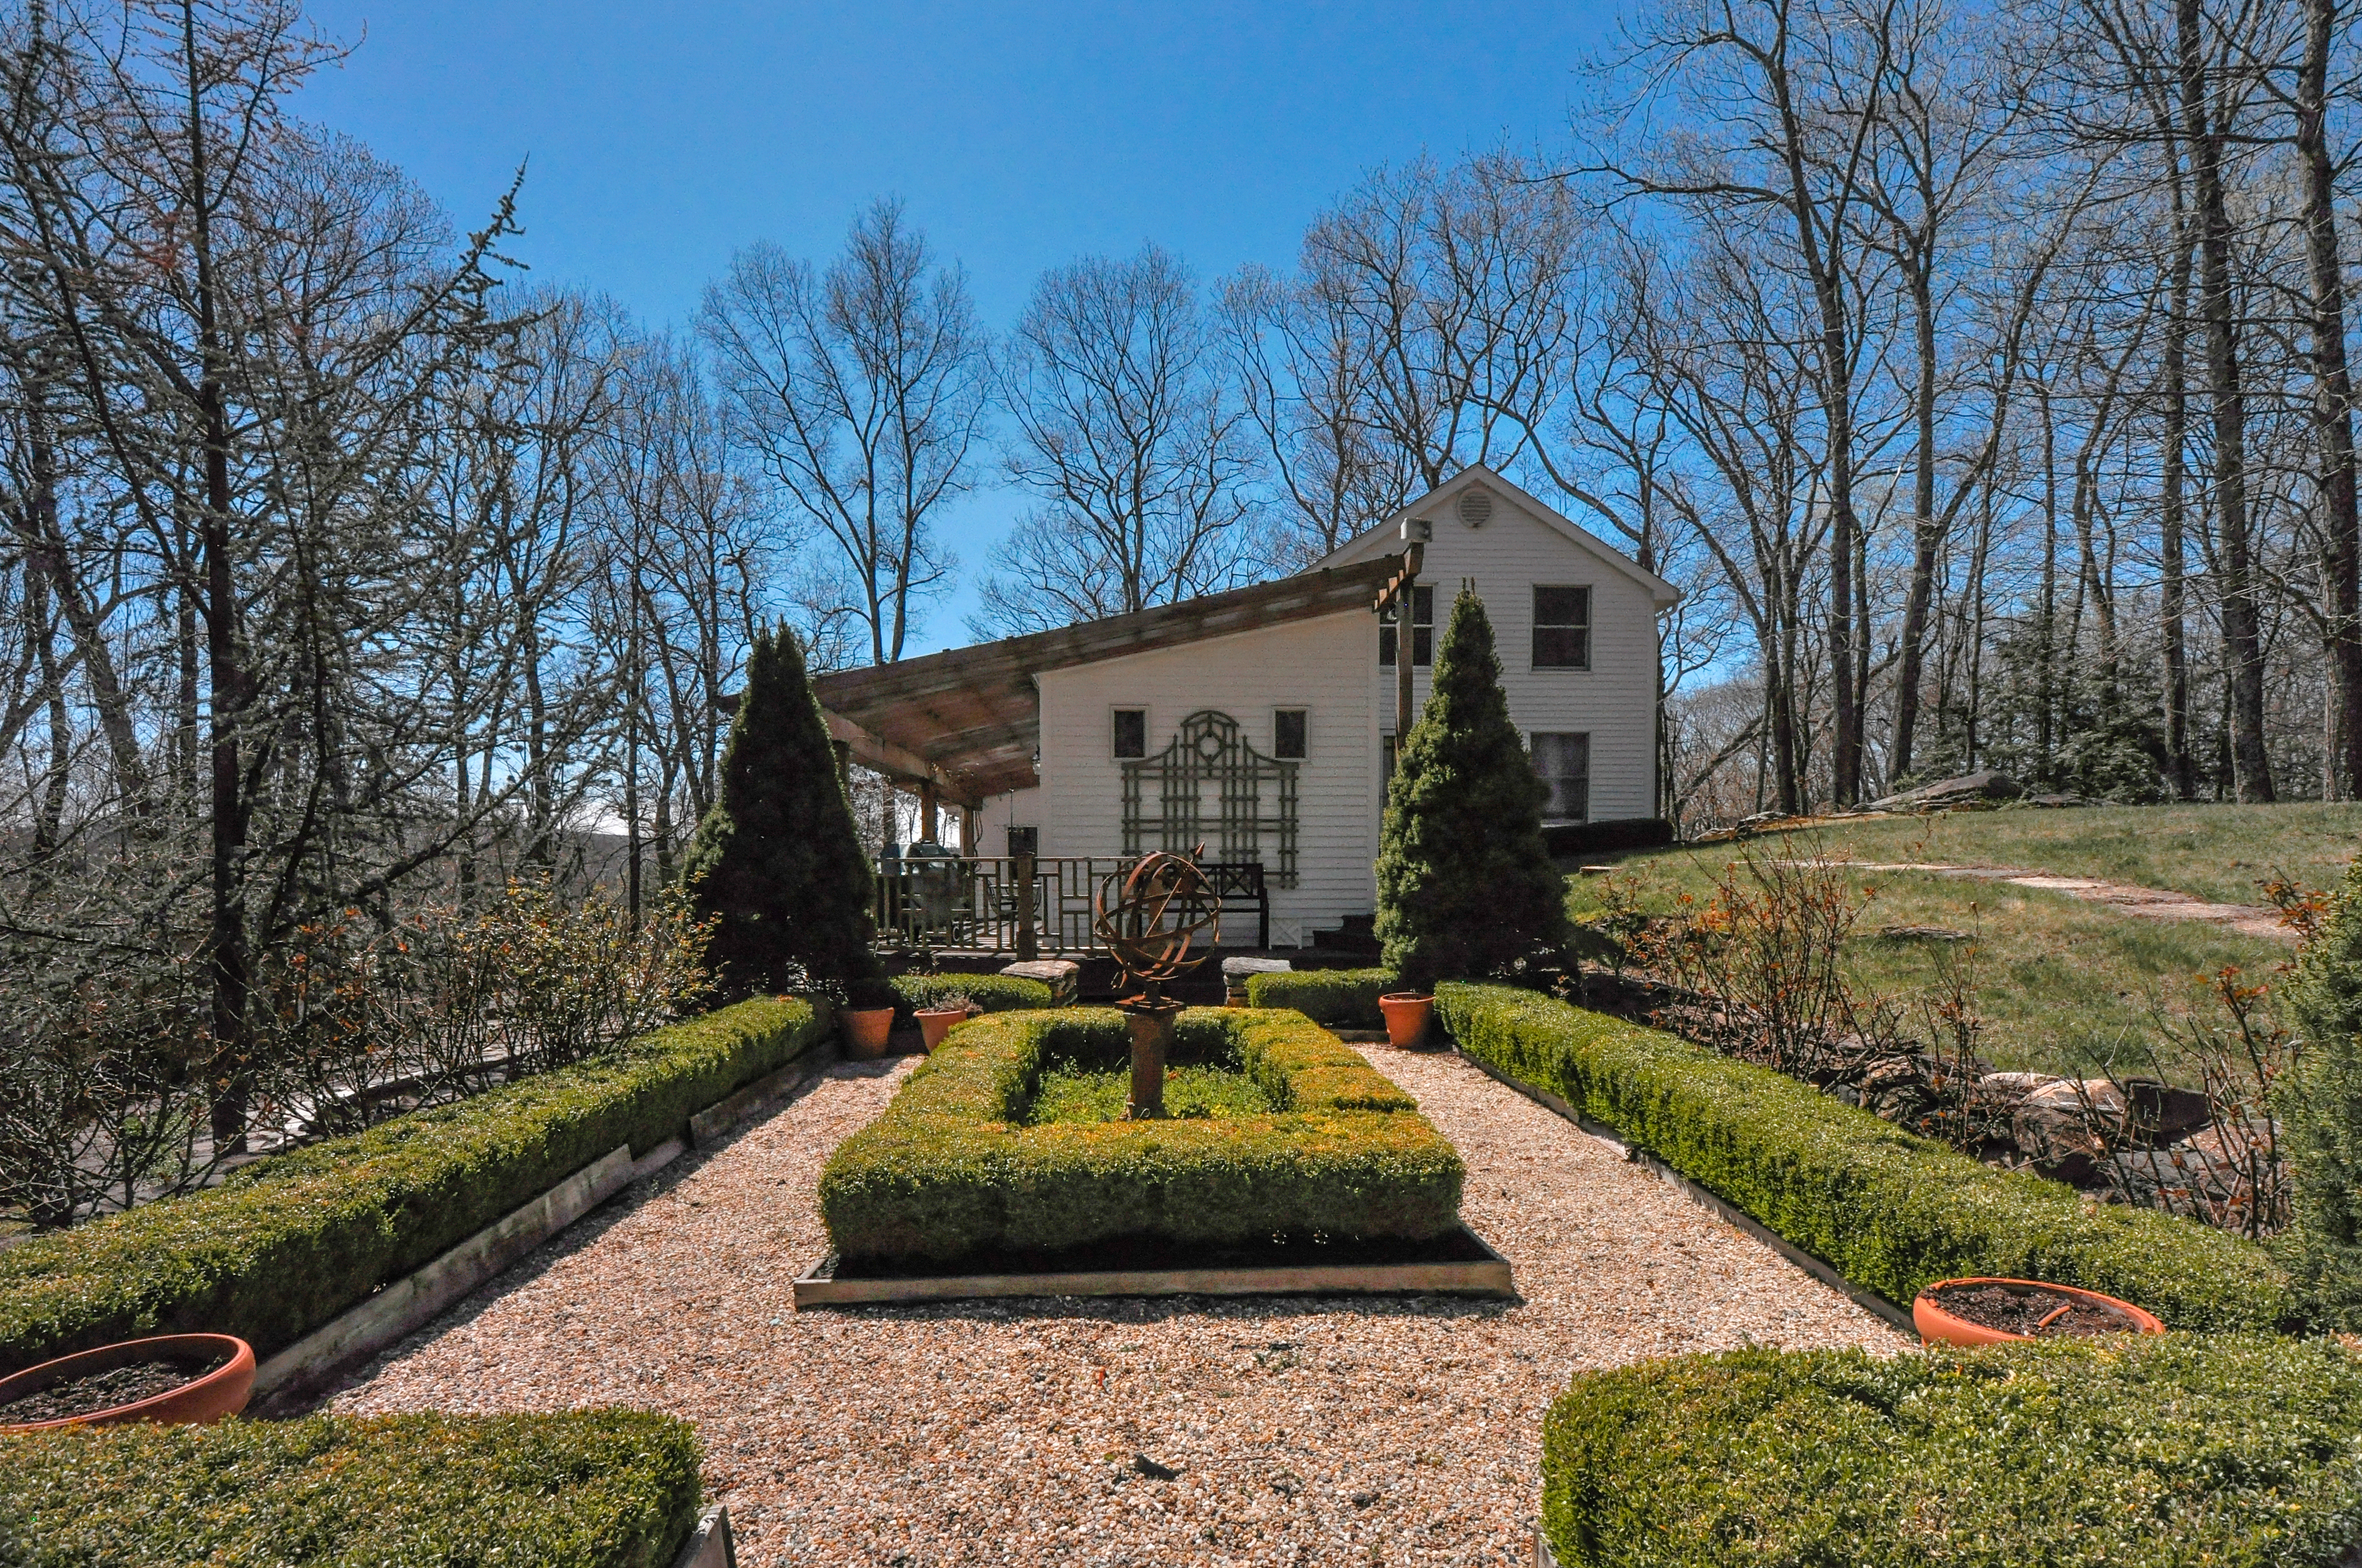 Single Family Home for Sale at Inviting Country Cape 51 Elephant Rock Rd Woodbury, Connecticut 06798 United States